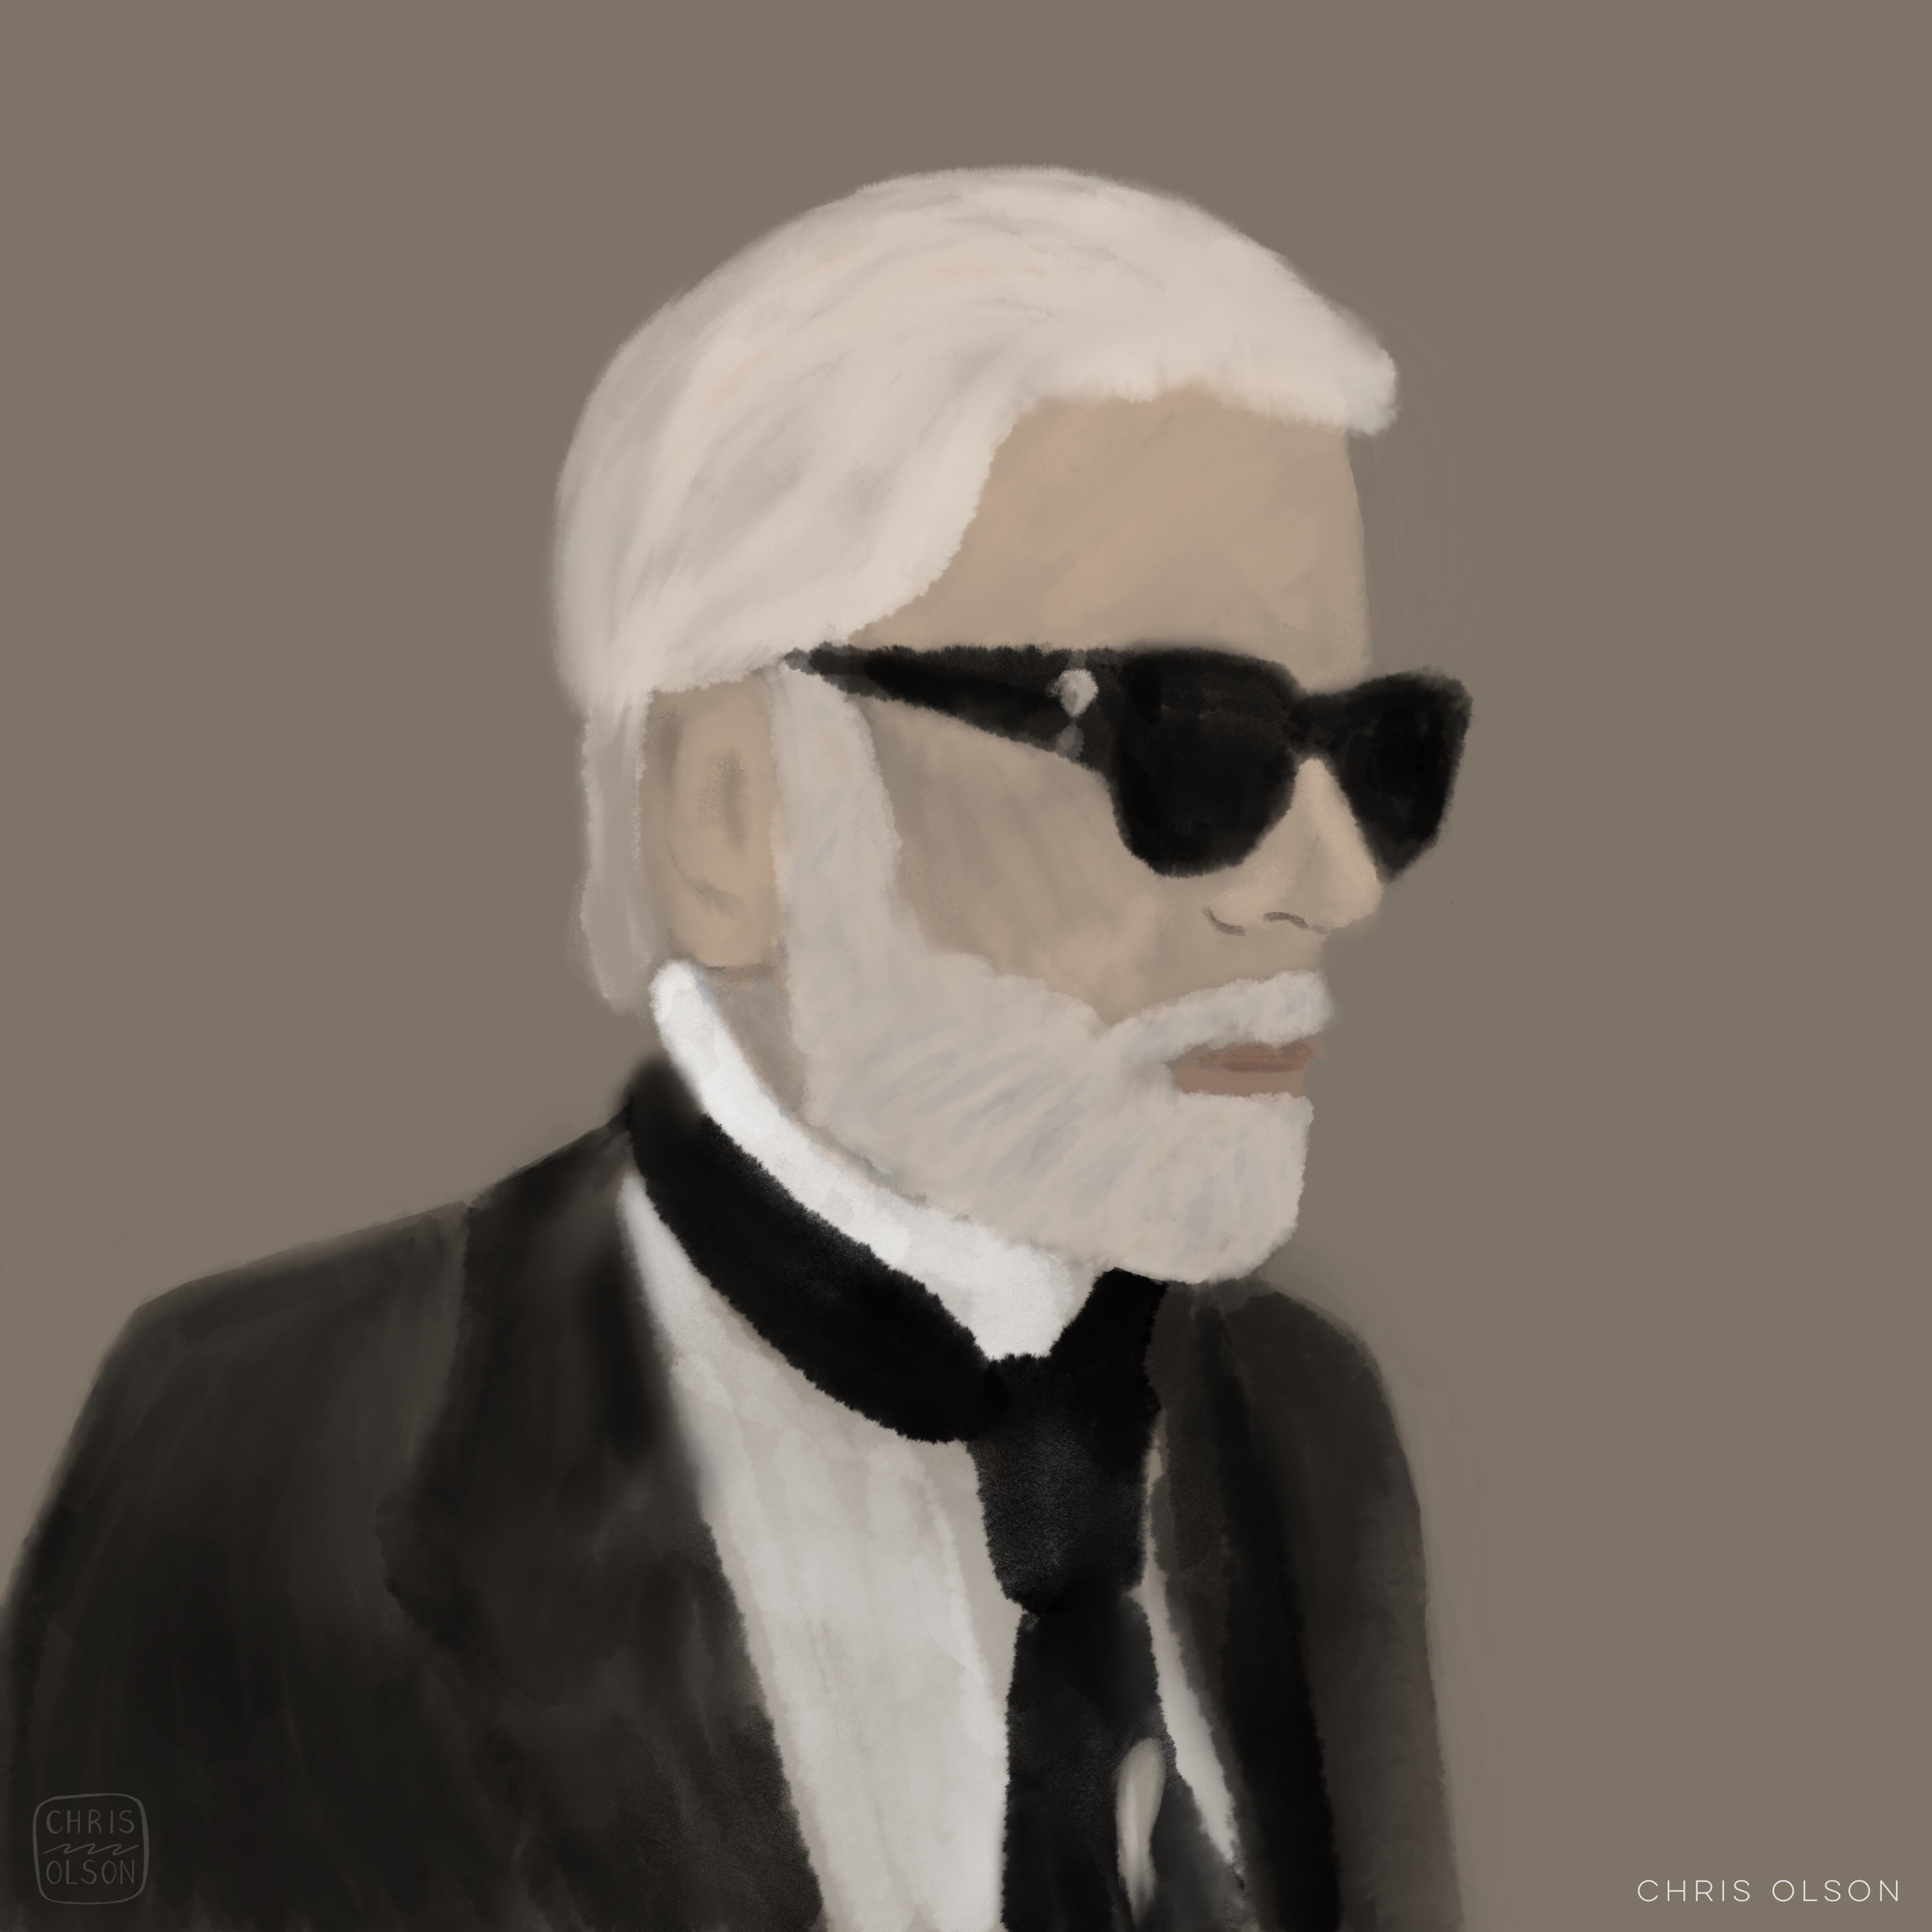 Karl Lagerfeld illustration by Chris Olson.